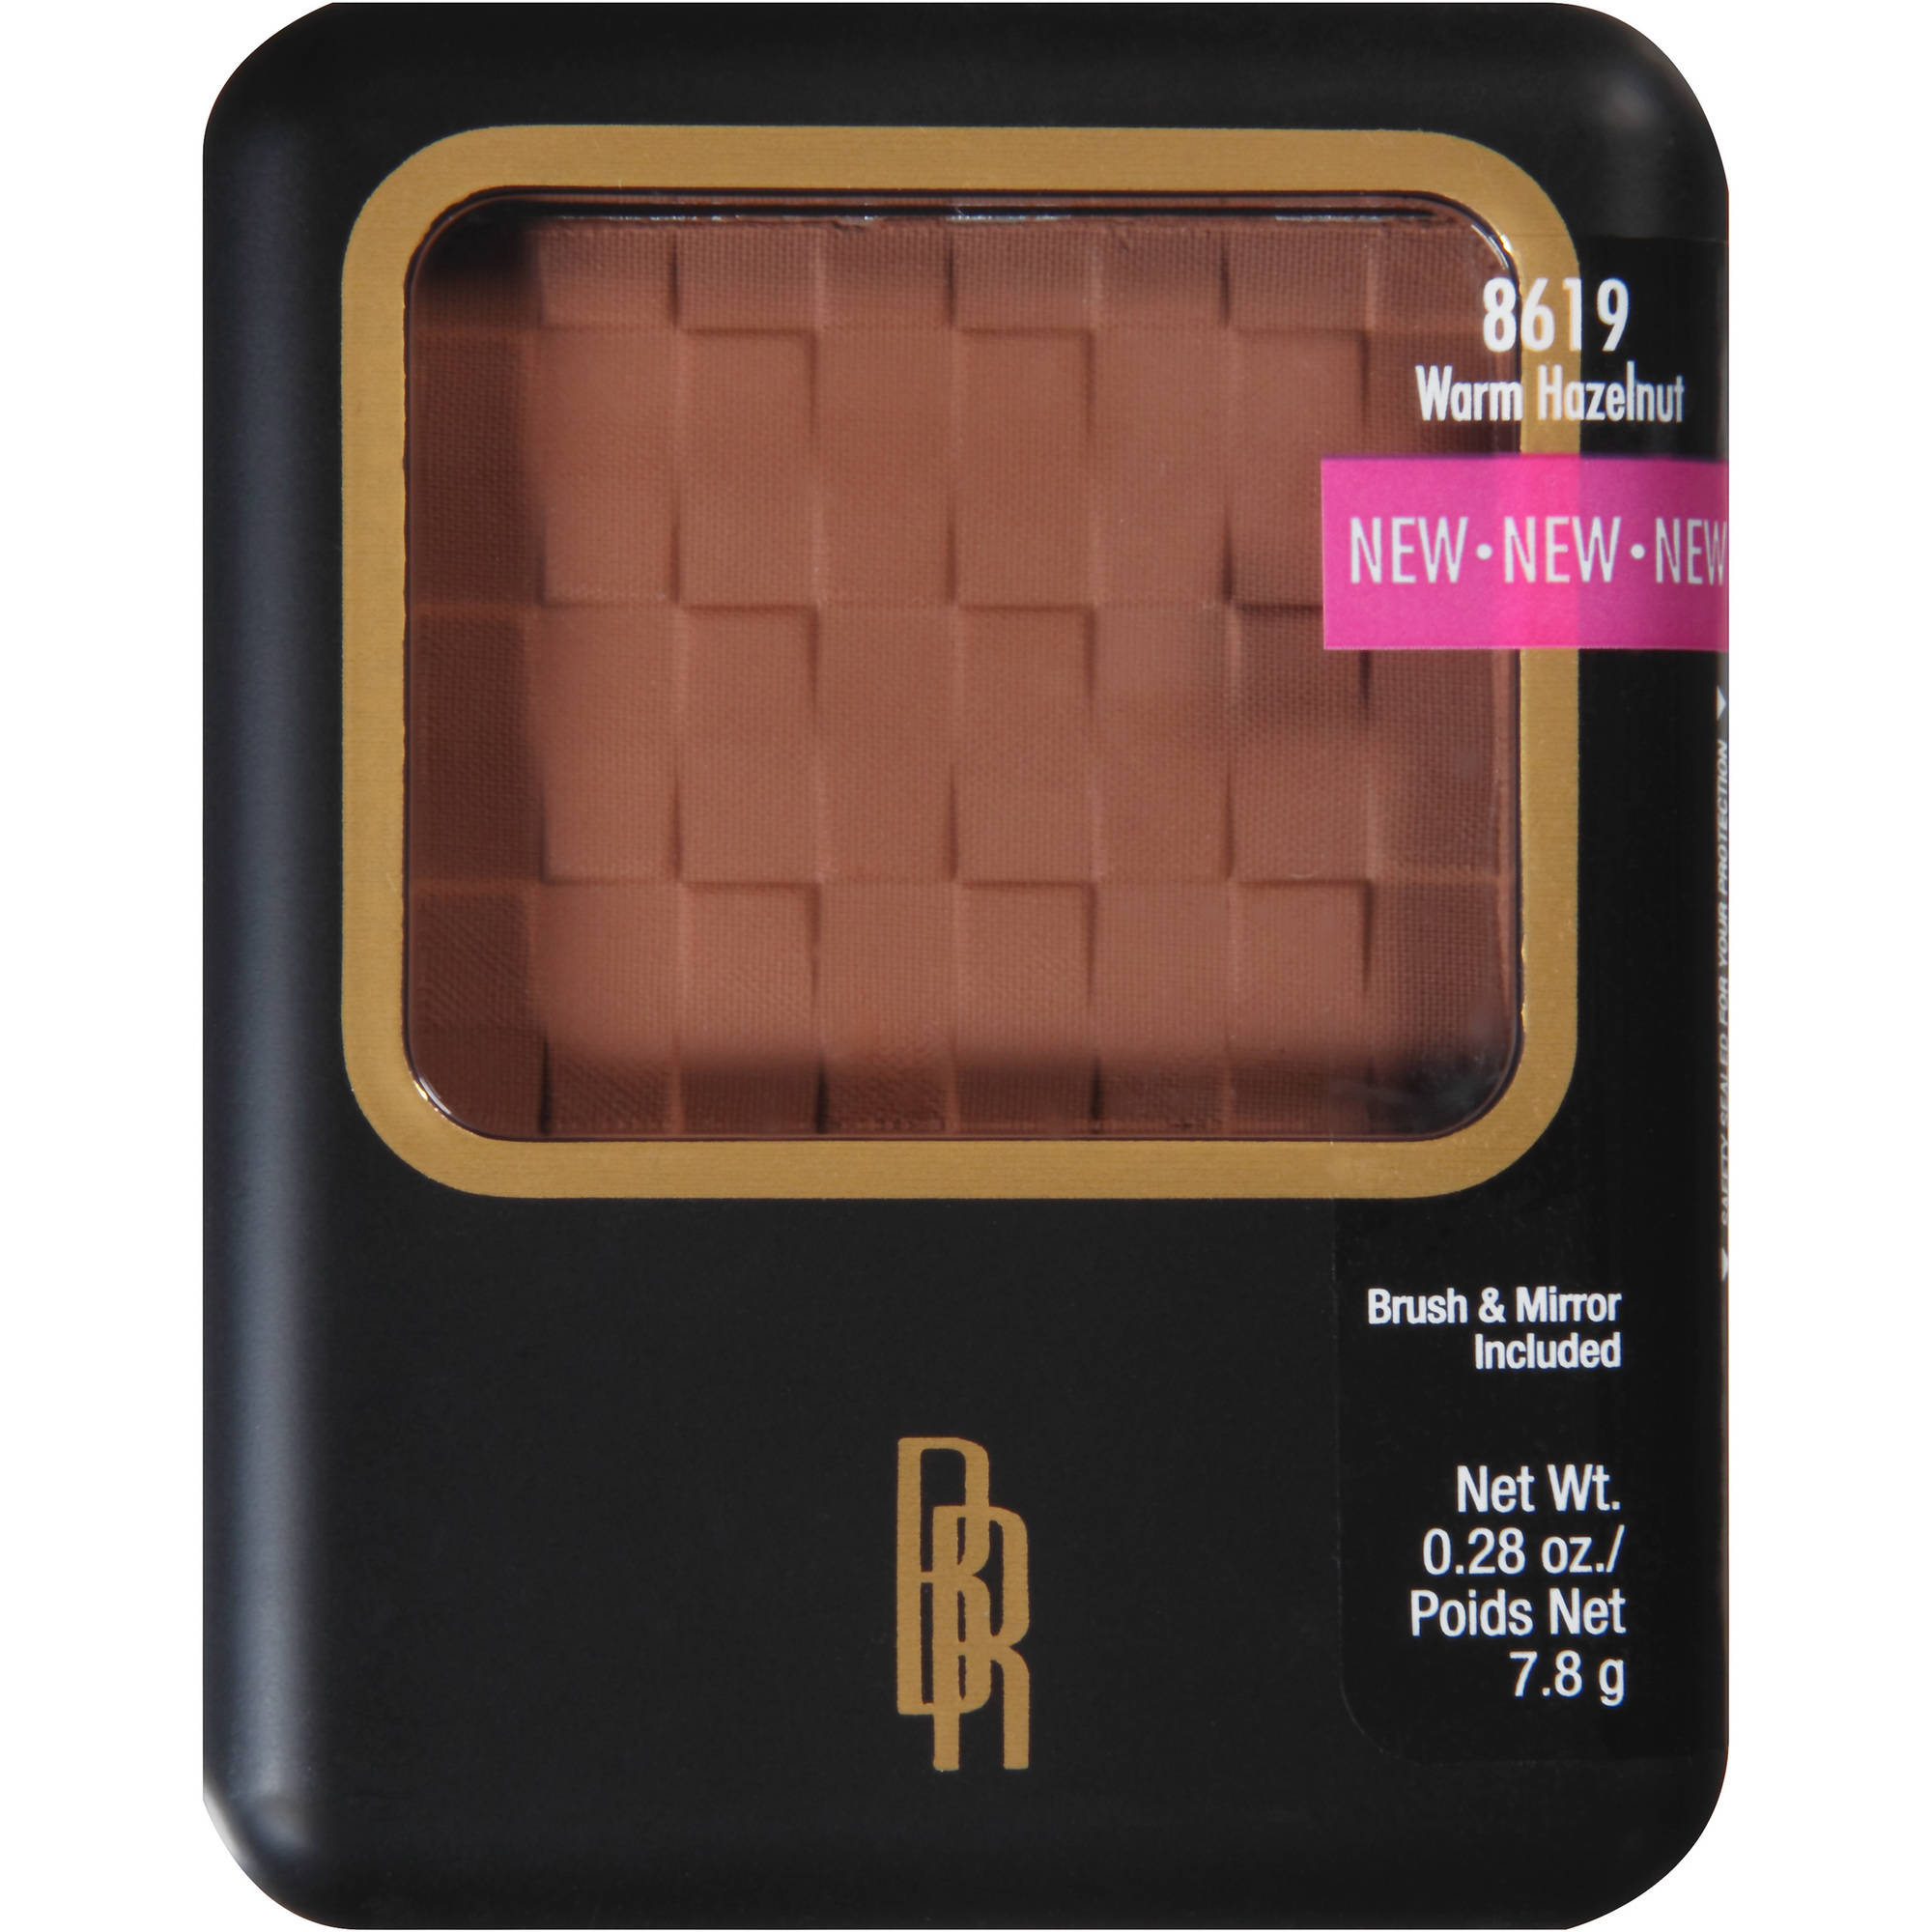 Black Radiance Pressed Powder, 8619 Warm Hazelnut, 0.28 oz